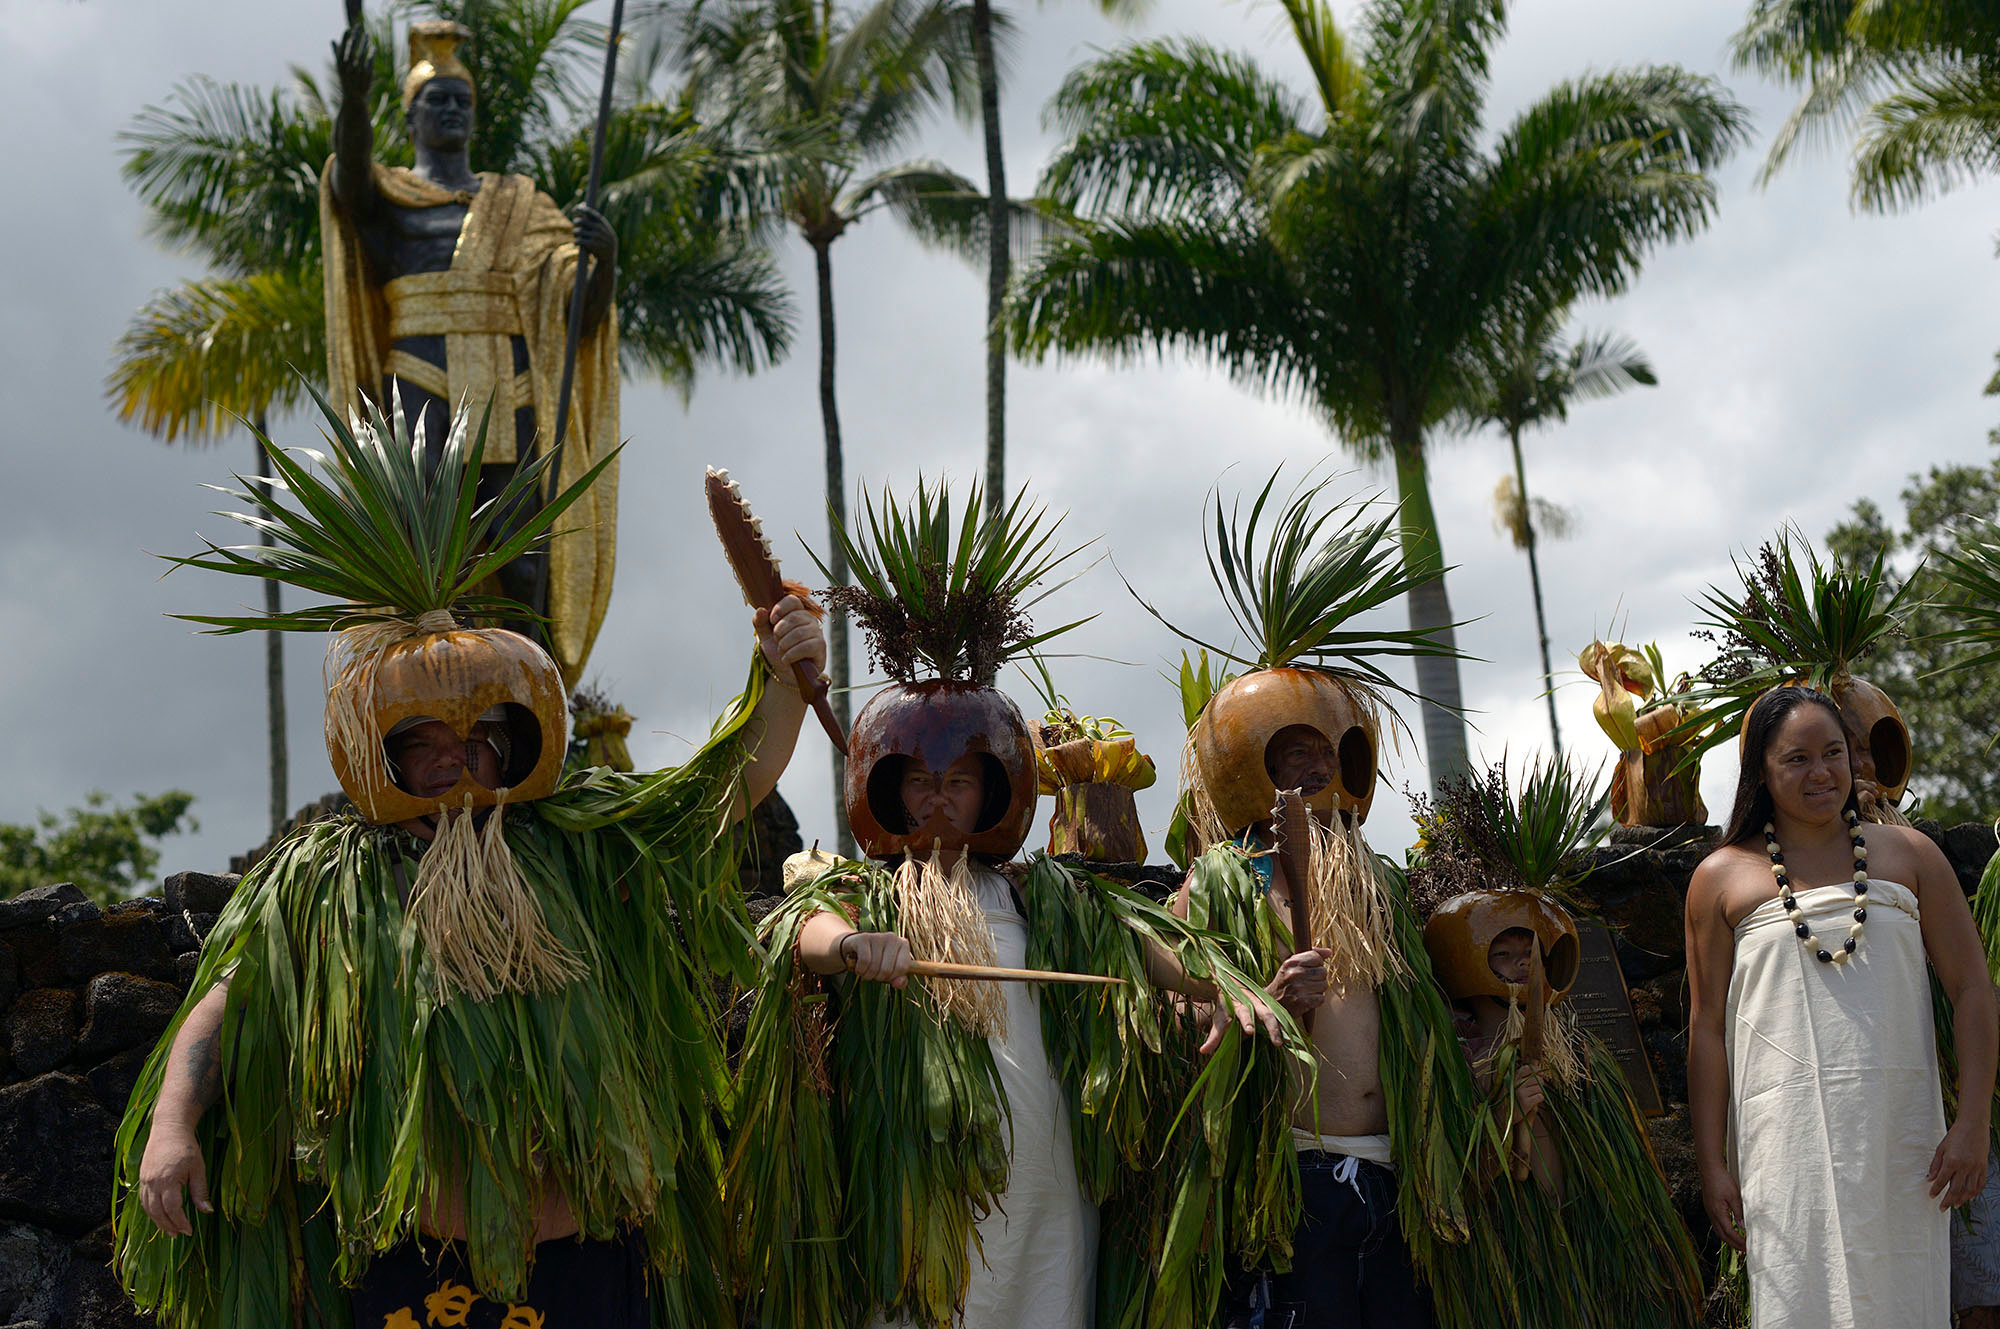 Warriors in traditional Hawaiian regalia